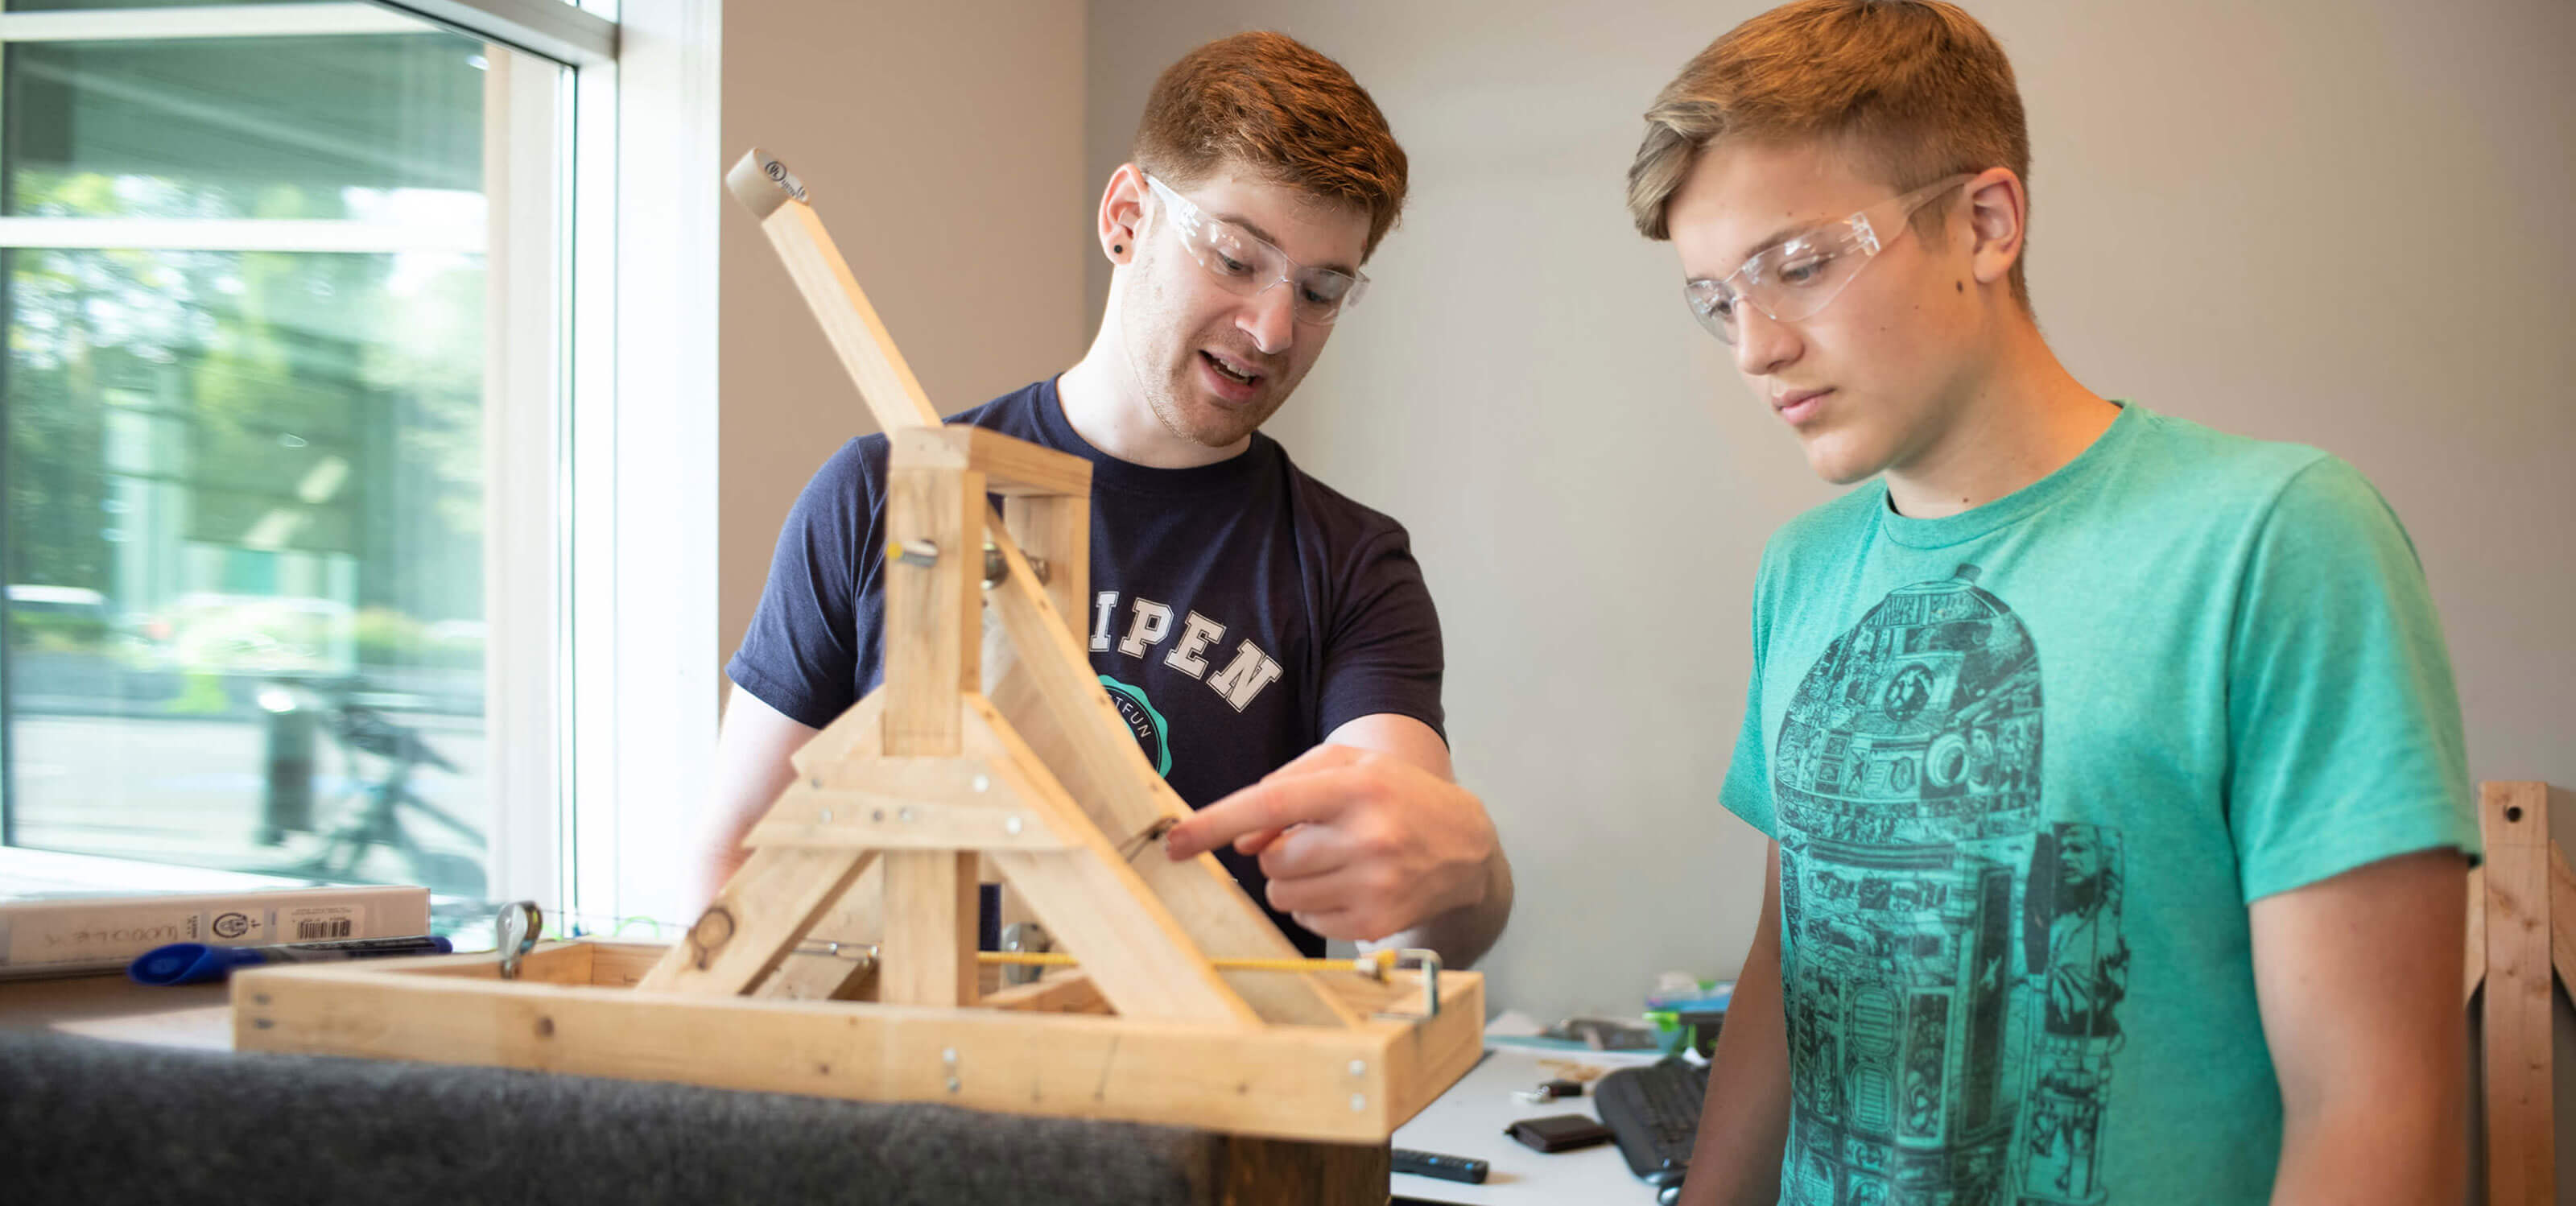 A DigiPen ProjectFUN instructor gestures at a wooden contraption as a student looks on